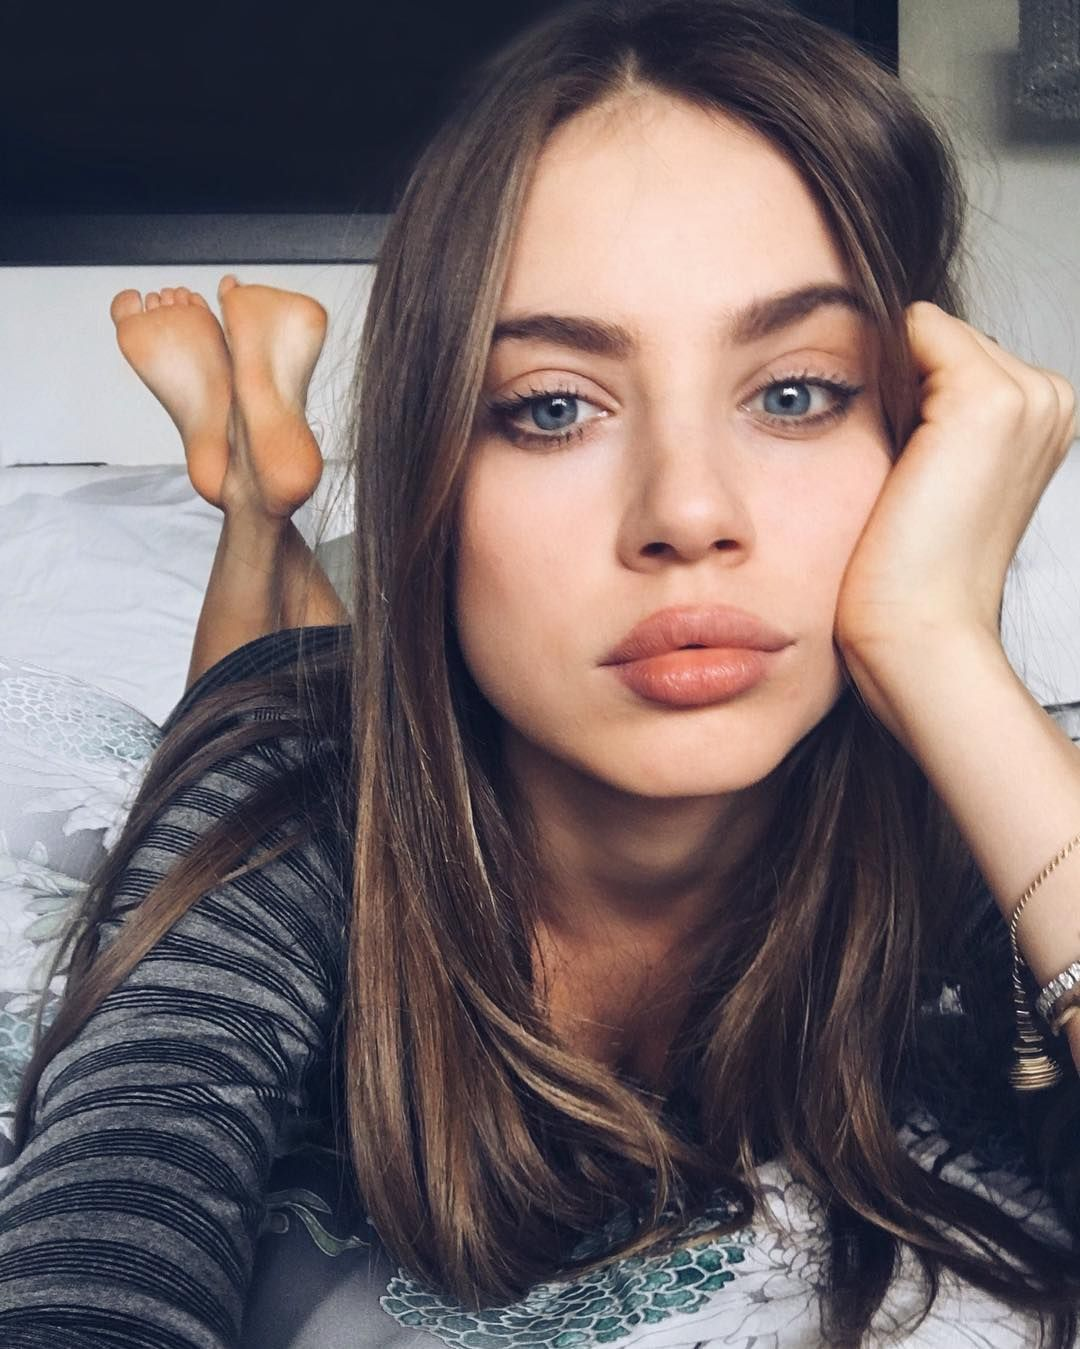 Feet Xenia Tchoumitcheva nude photos 2019